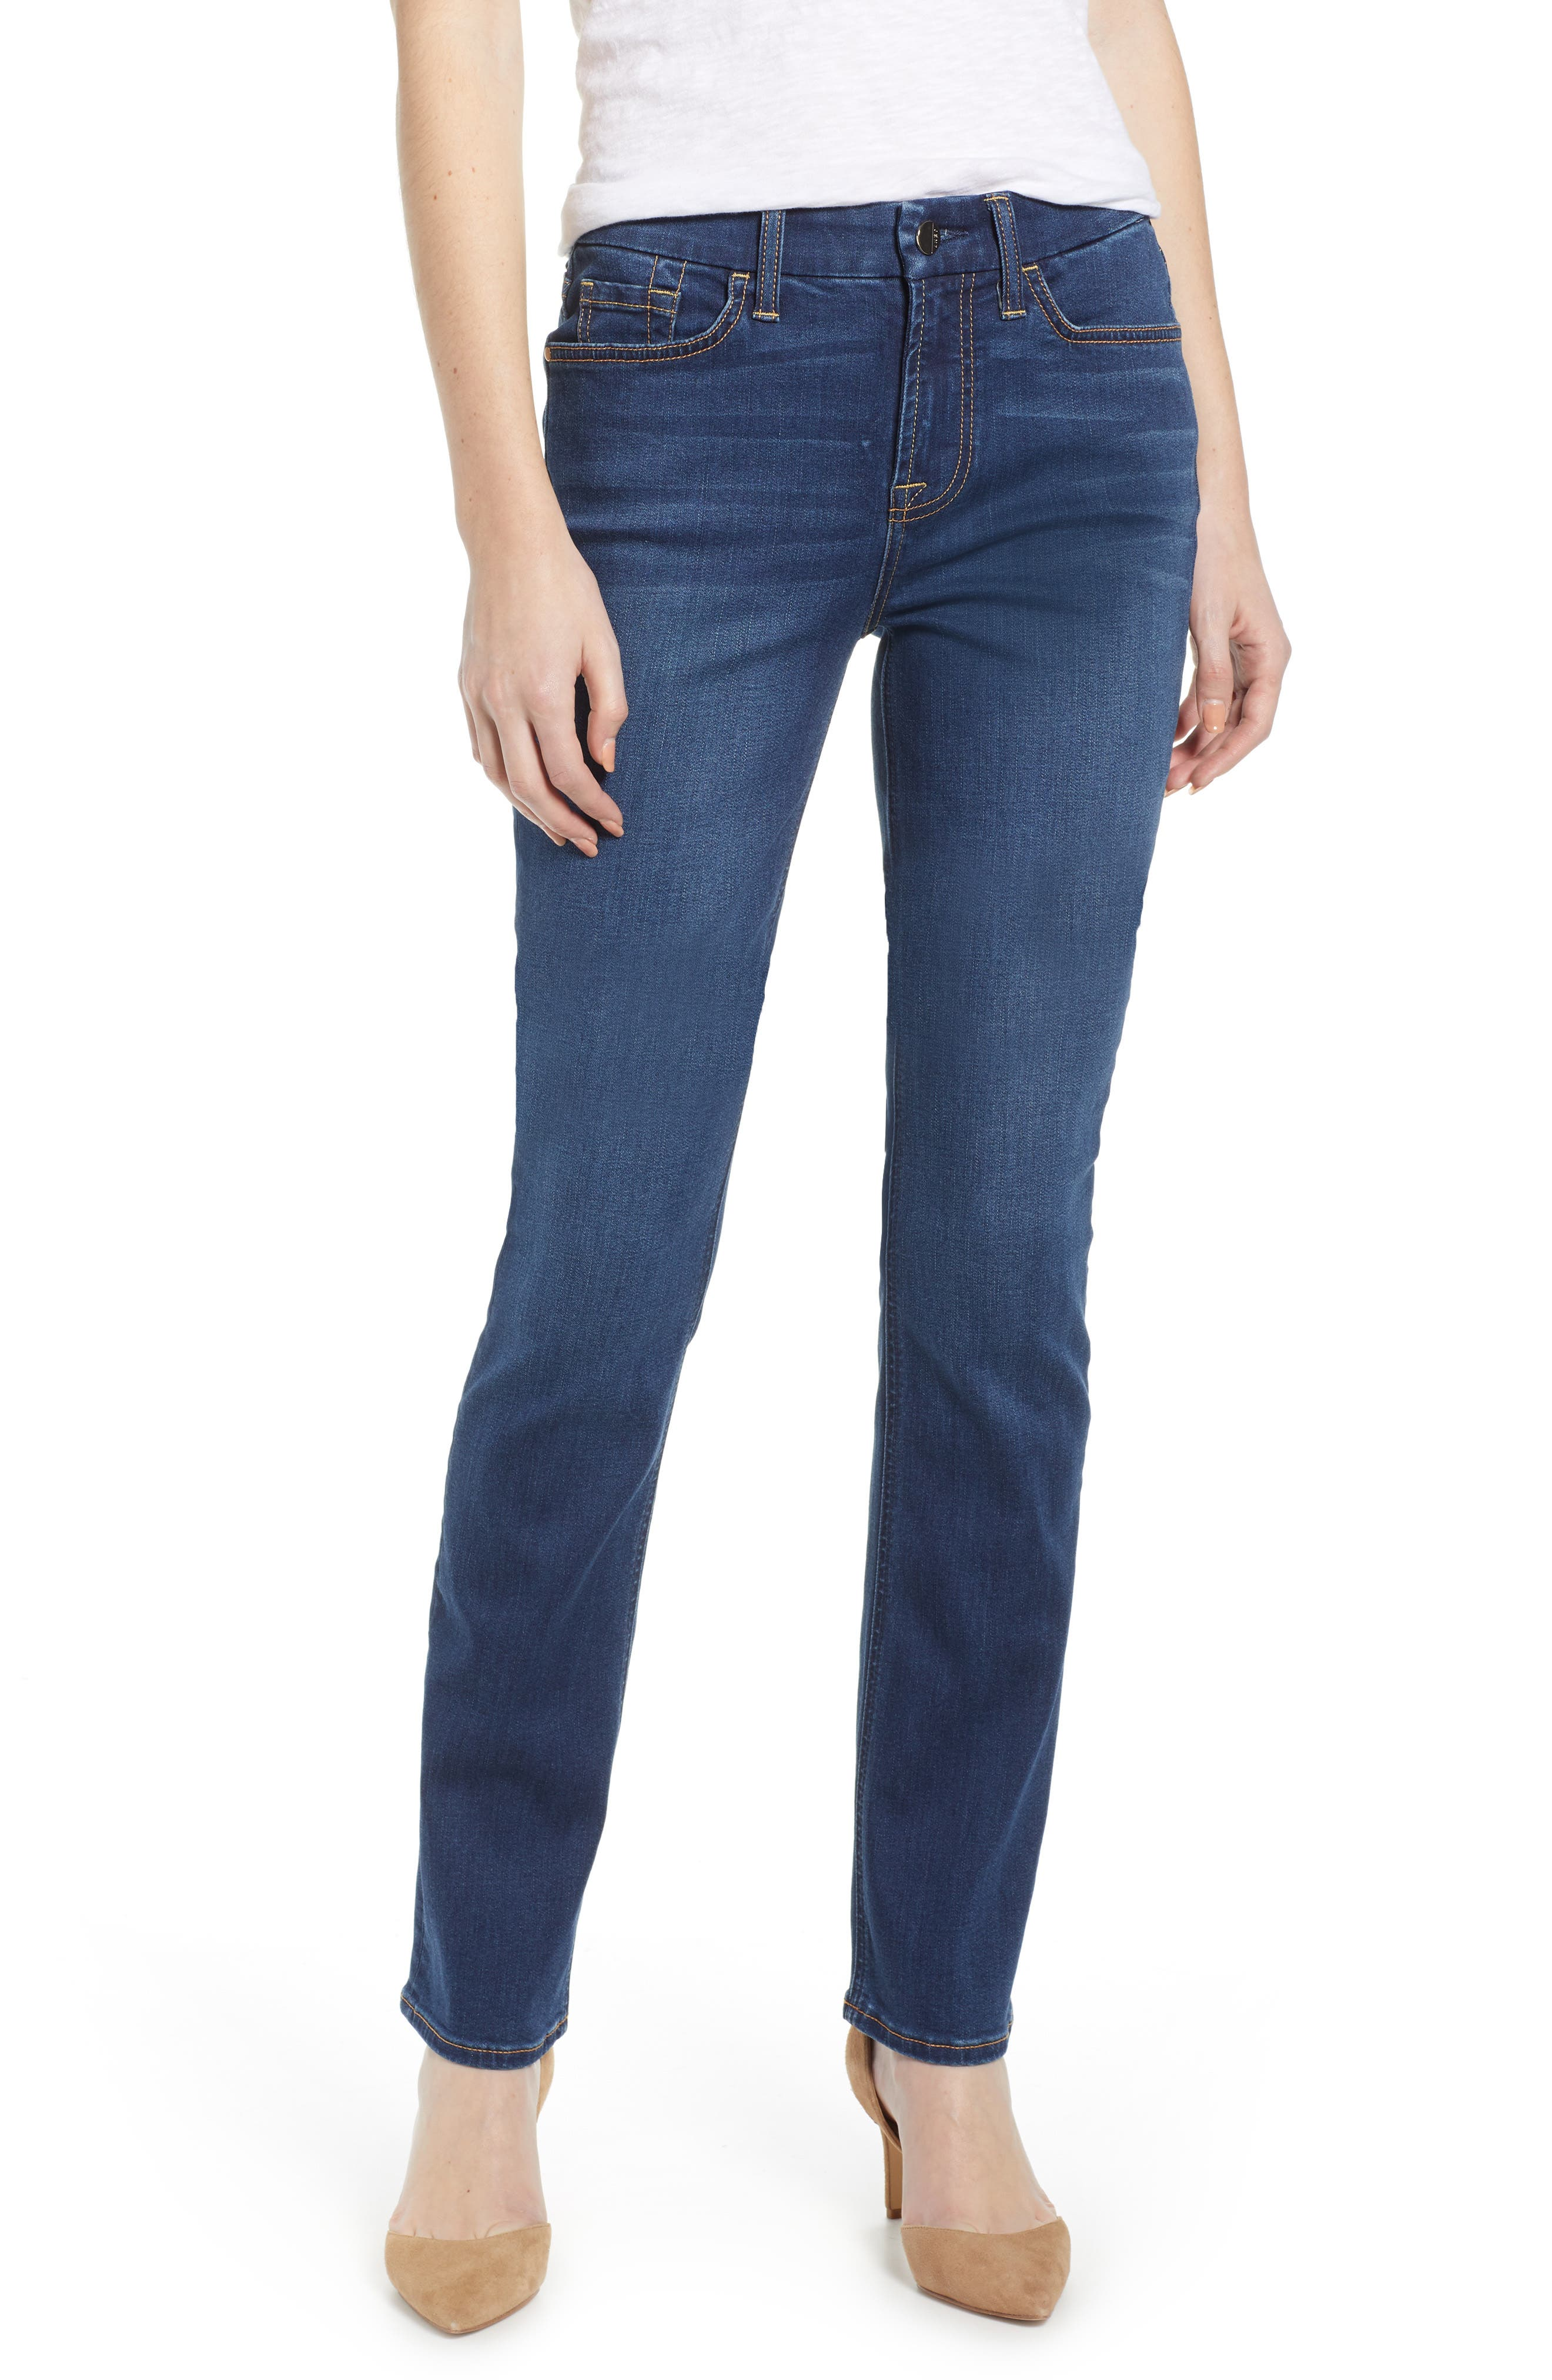 JEN7 BY 7 FOR ALL MANKIND Slim Straight Leg Jeans, Main, color, 404